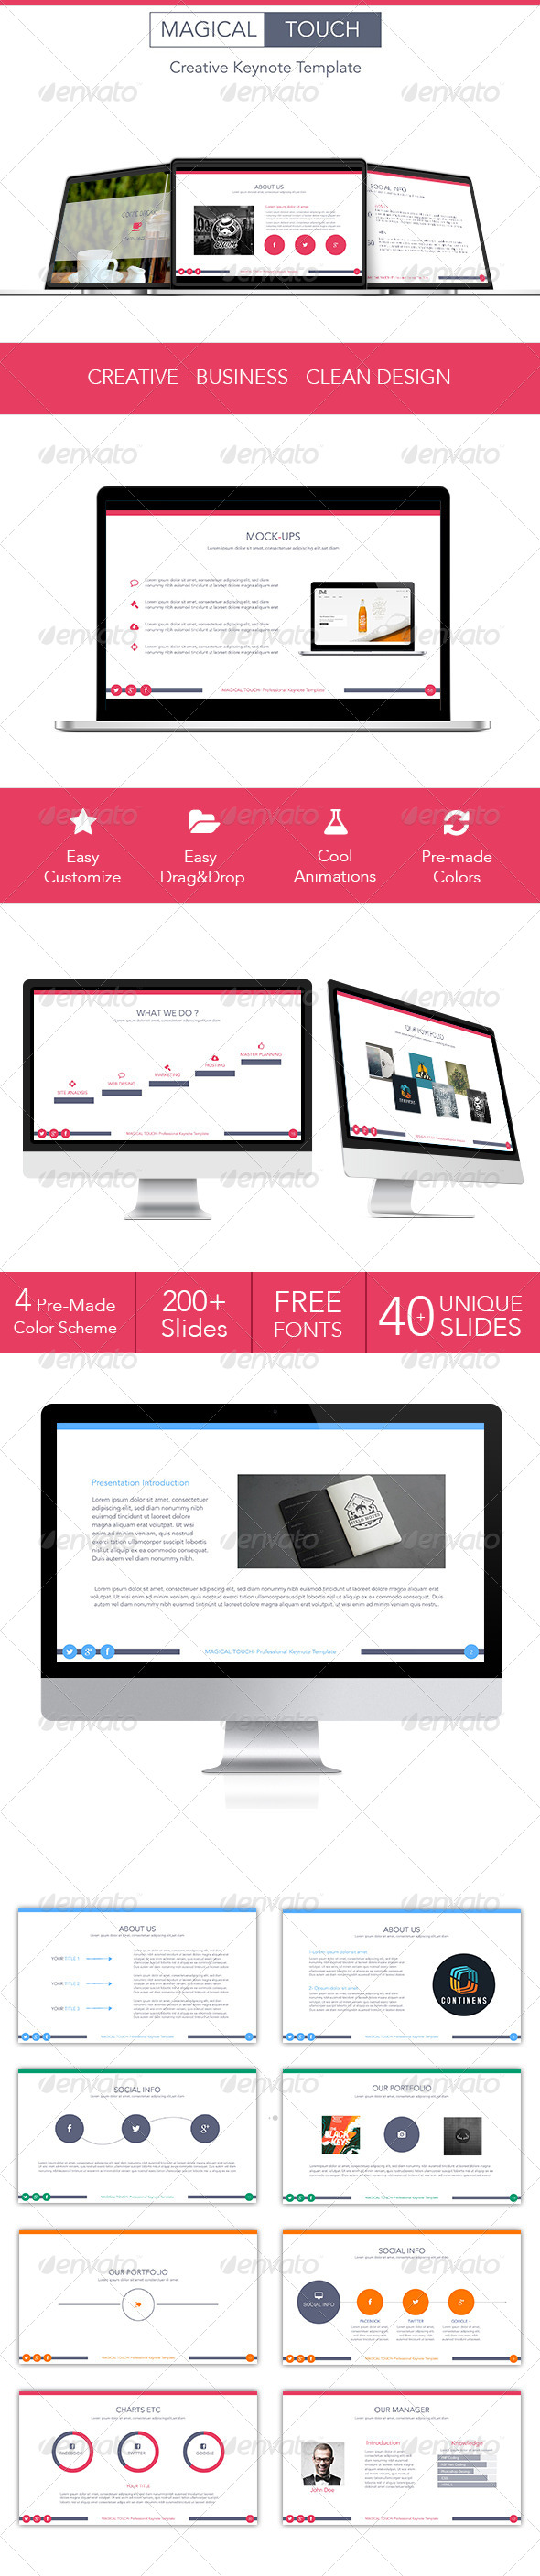 GraphicRiver Magical Touch Keynote Template 7613118